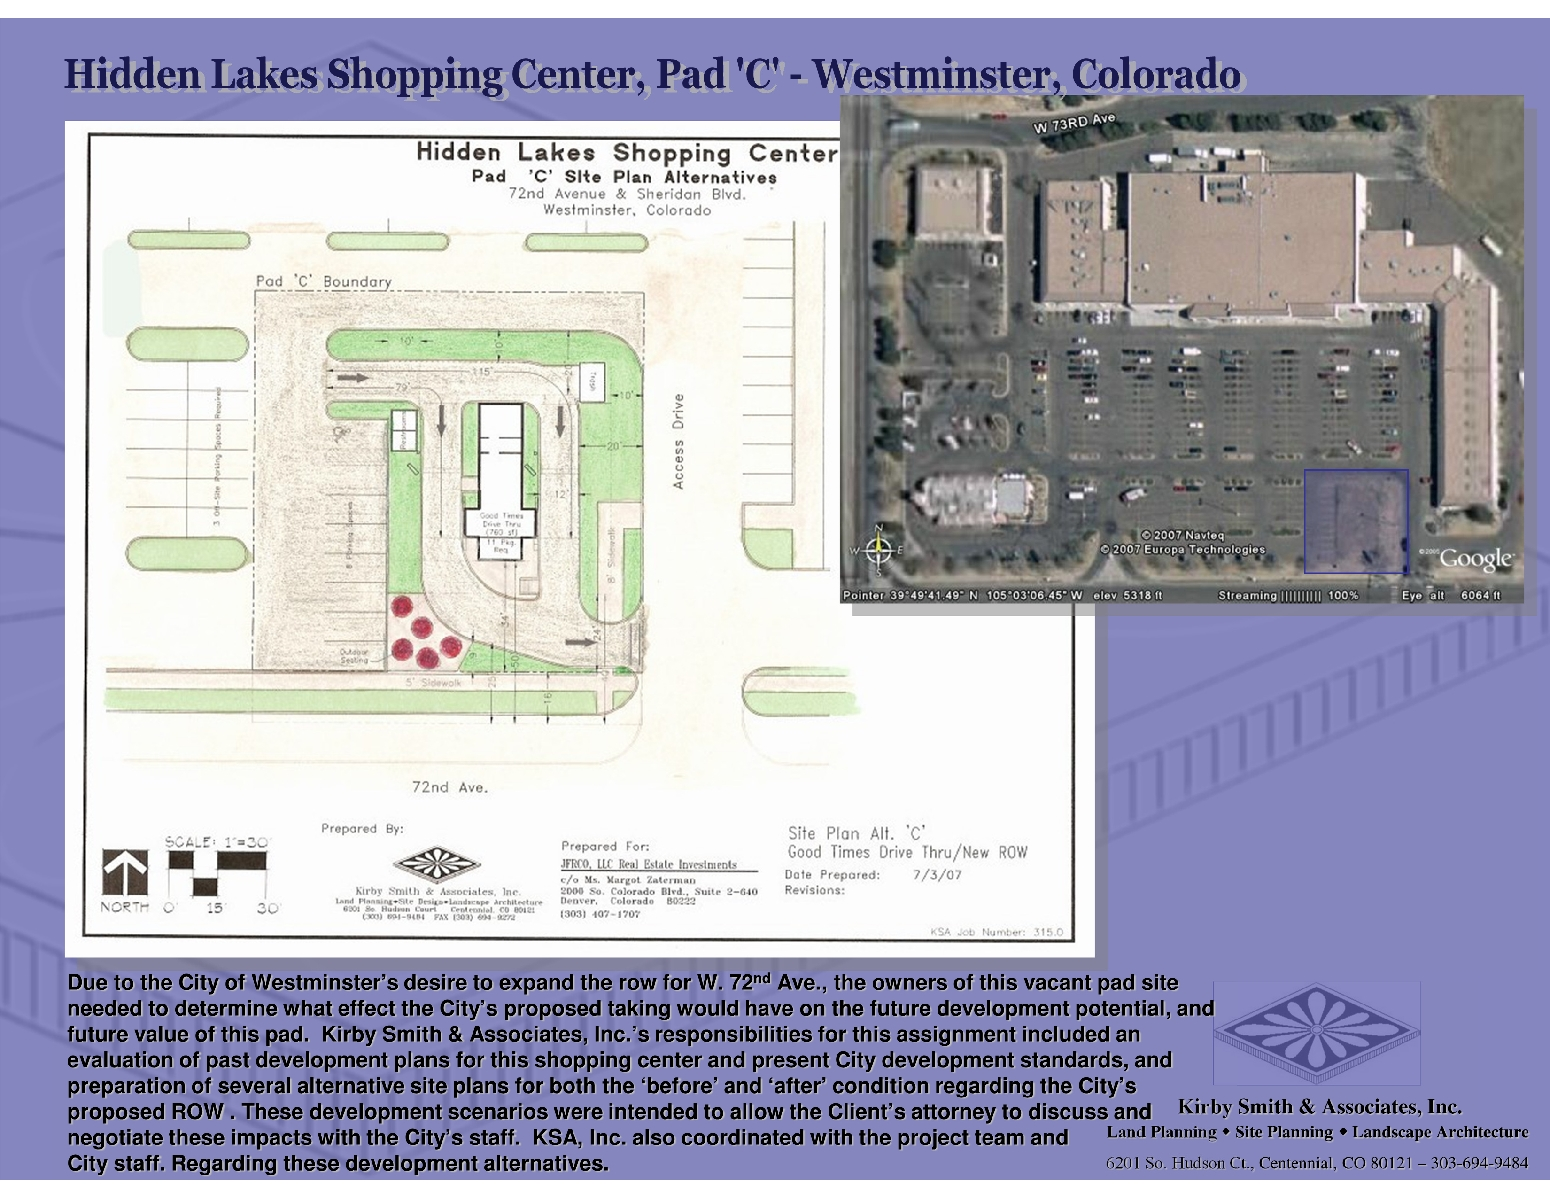 Due to the City of Westminster's desire to expand the row for W. 72nd Ave., the owners of this vacant pad site needed to determine what effect the City's proposed taking would have on the future development potential, and future value of this pad.  Kirby Smith & Associates, Inc.'s responsibilities for this assignment included an evaluation of past development plans for this shopping center and present City development standards, and preparation of several alternative site plans for both the 'before' and 'after' condition regarding the City's proposed ROW . These development scenarios were intended to allow the Client's attorney to discuss and negotiate these impacts with the City's staff.  KSA, Inc. also coordinated with the project team and                      City staff regarding these development alternatives.